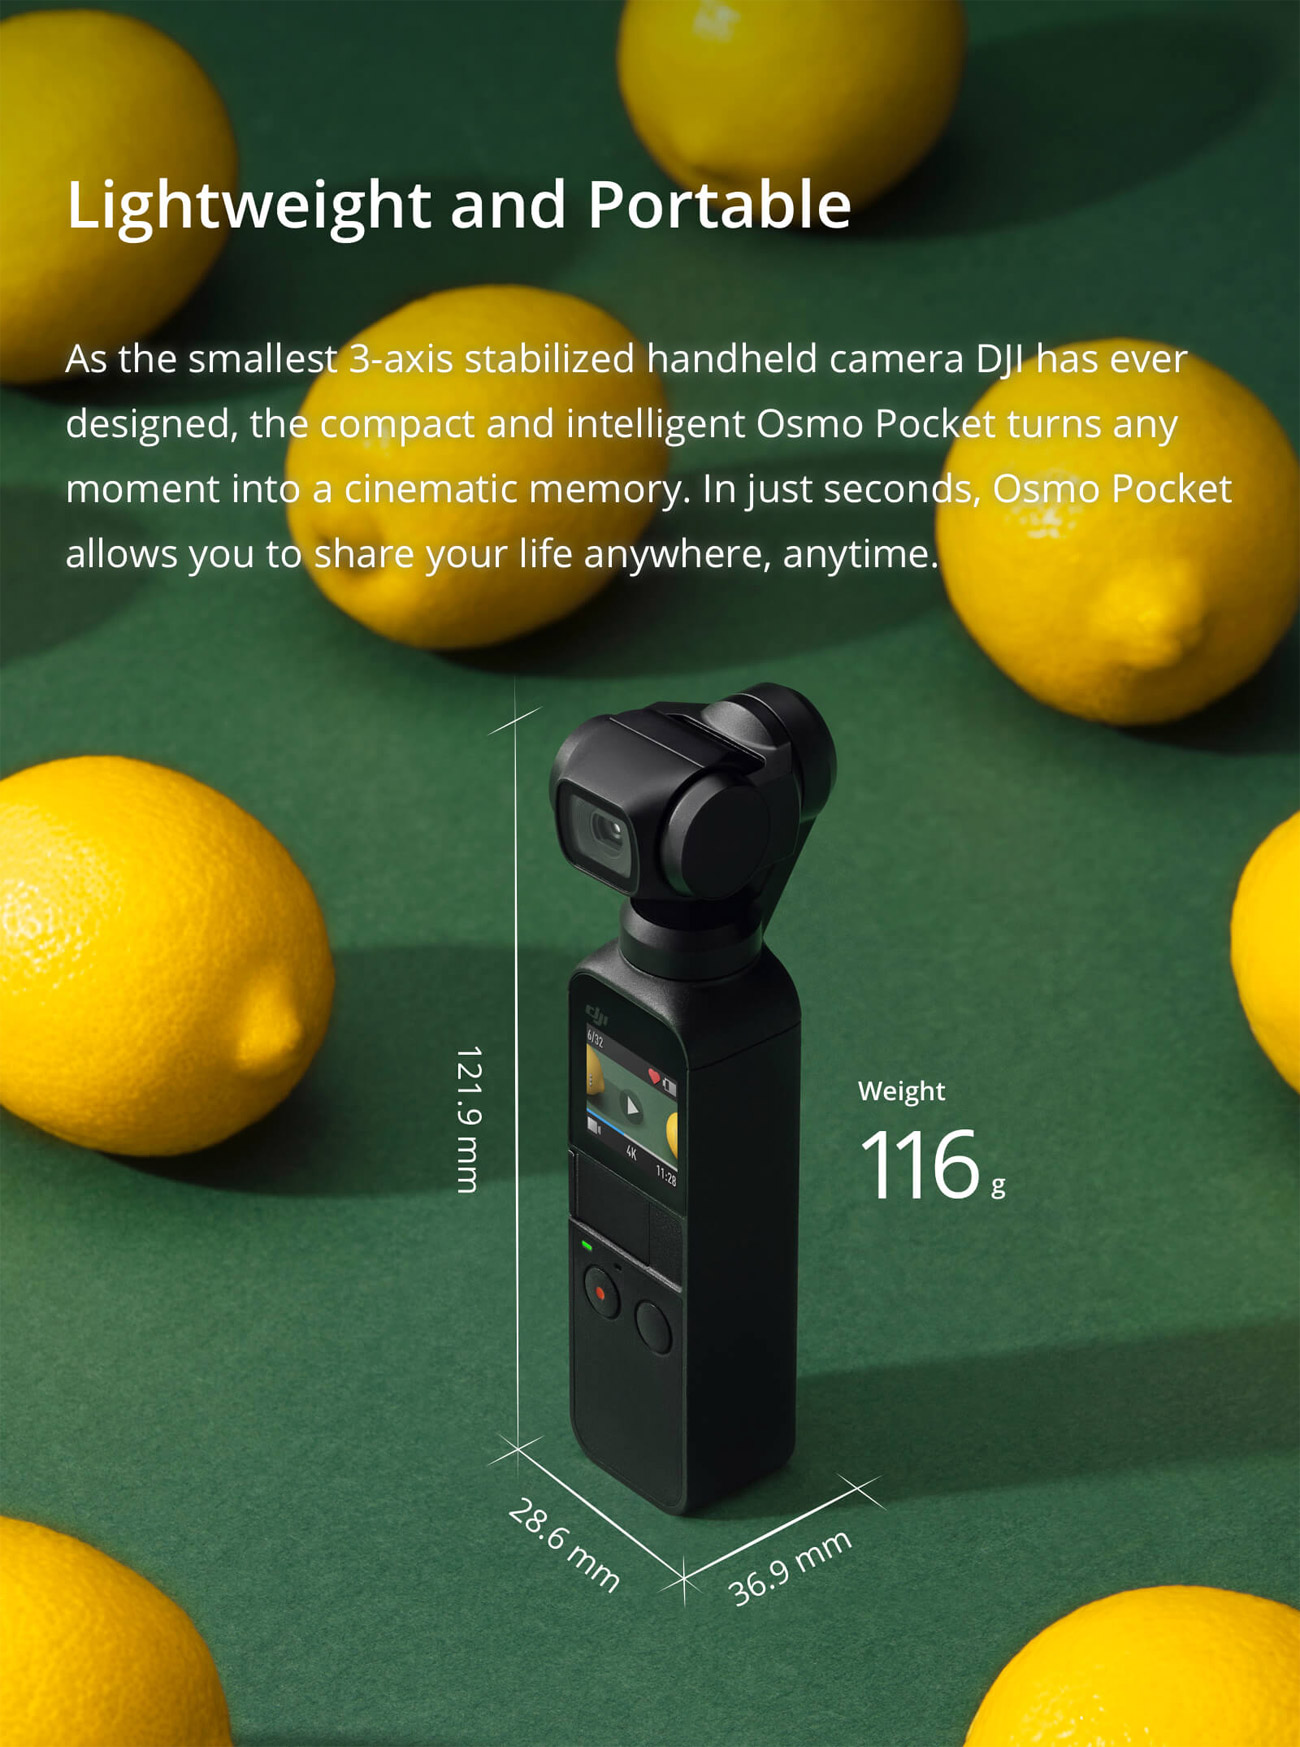 Osmo Pocket Lightweight and Portable Banner with the Product Next to Some Lemons. Text on the banner reads: Lightweight and Portable, As the smallest 3-axis stabilized handheld camera DJI has ever designed, the compact and intelligent Osmo Pocket turns any moment into a cinematic memory. In just seconds, Osmo Pocket allows you to share your life anywhere, anytime.